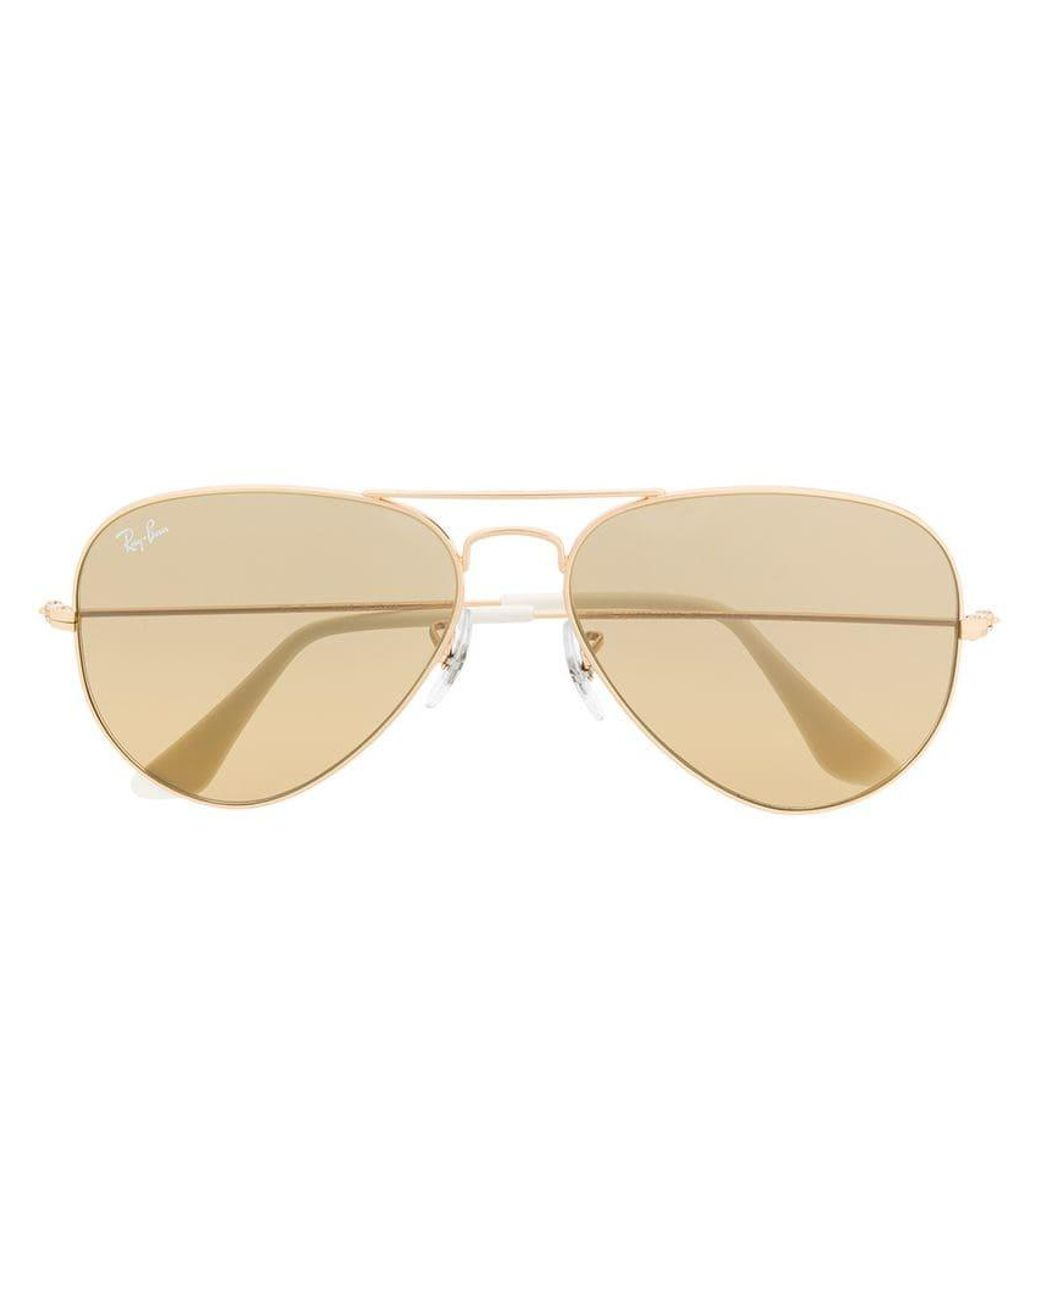 e50a399826 Ray-Ban Aviator Frame Sunglasses in Metallic - Lyst